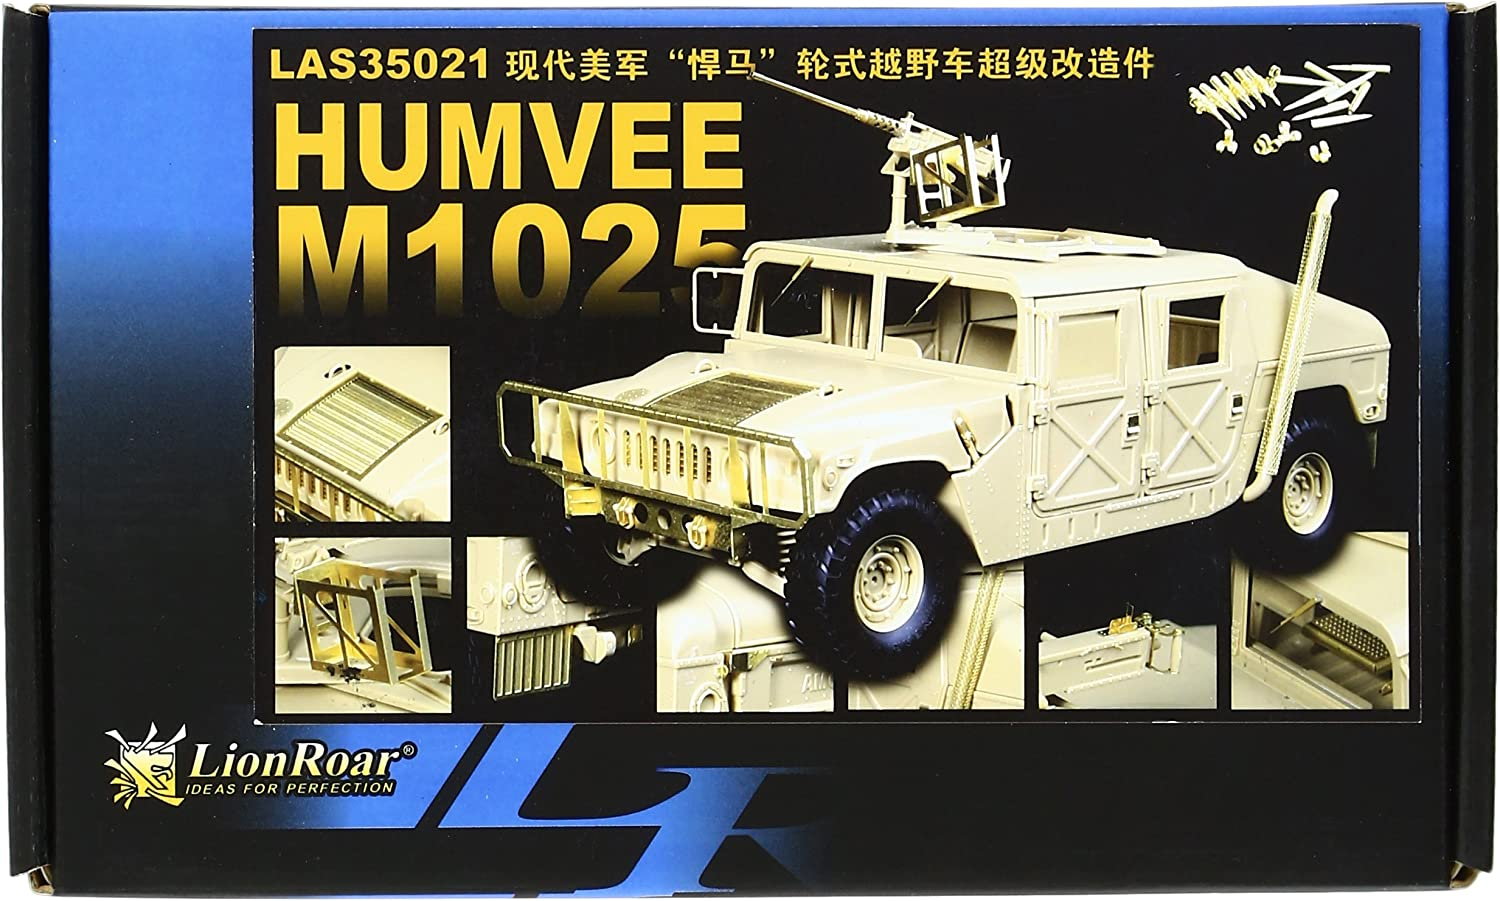 entrega rápida 1 35 35 35 U.S. Army M1025 Humvee emboldened for Detail Up Parts Set (LAS3521) (japan import)  80% de descuento